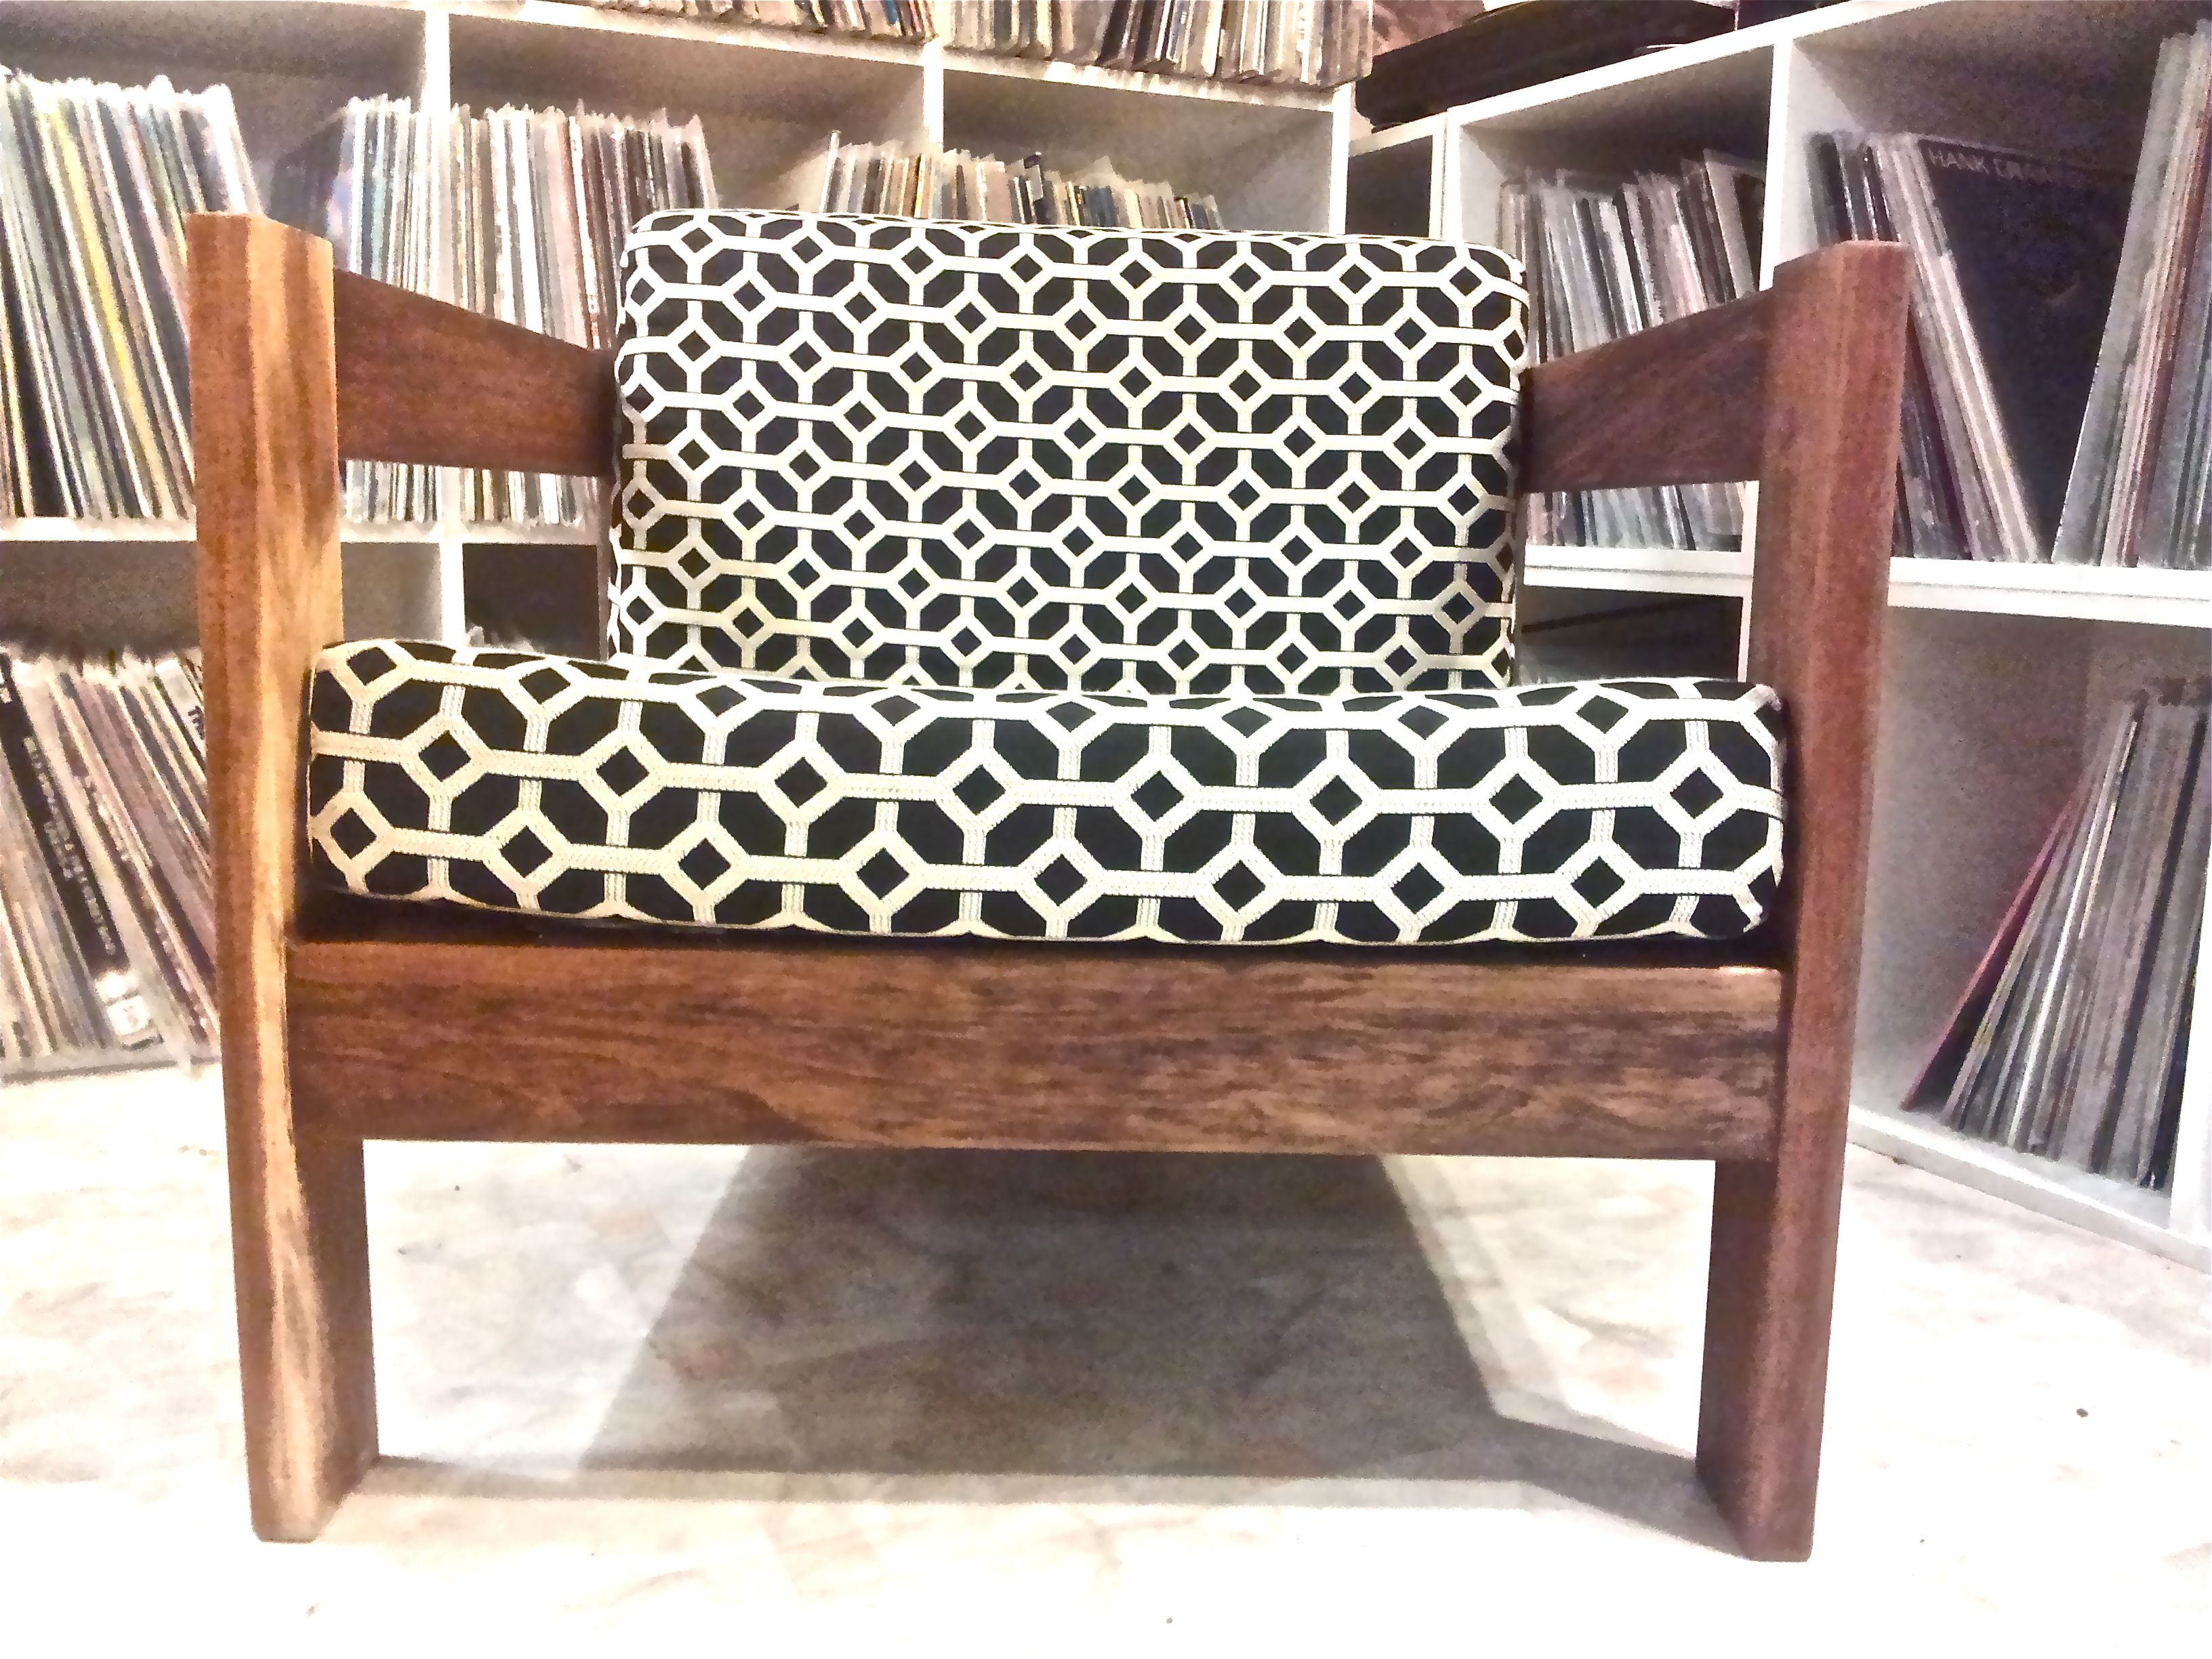 refurbished armchairs google search geometric chair pinterest